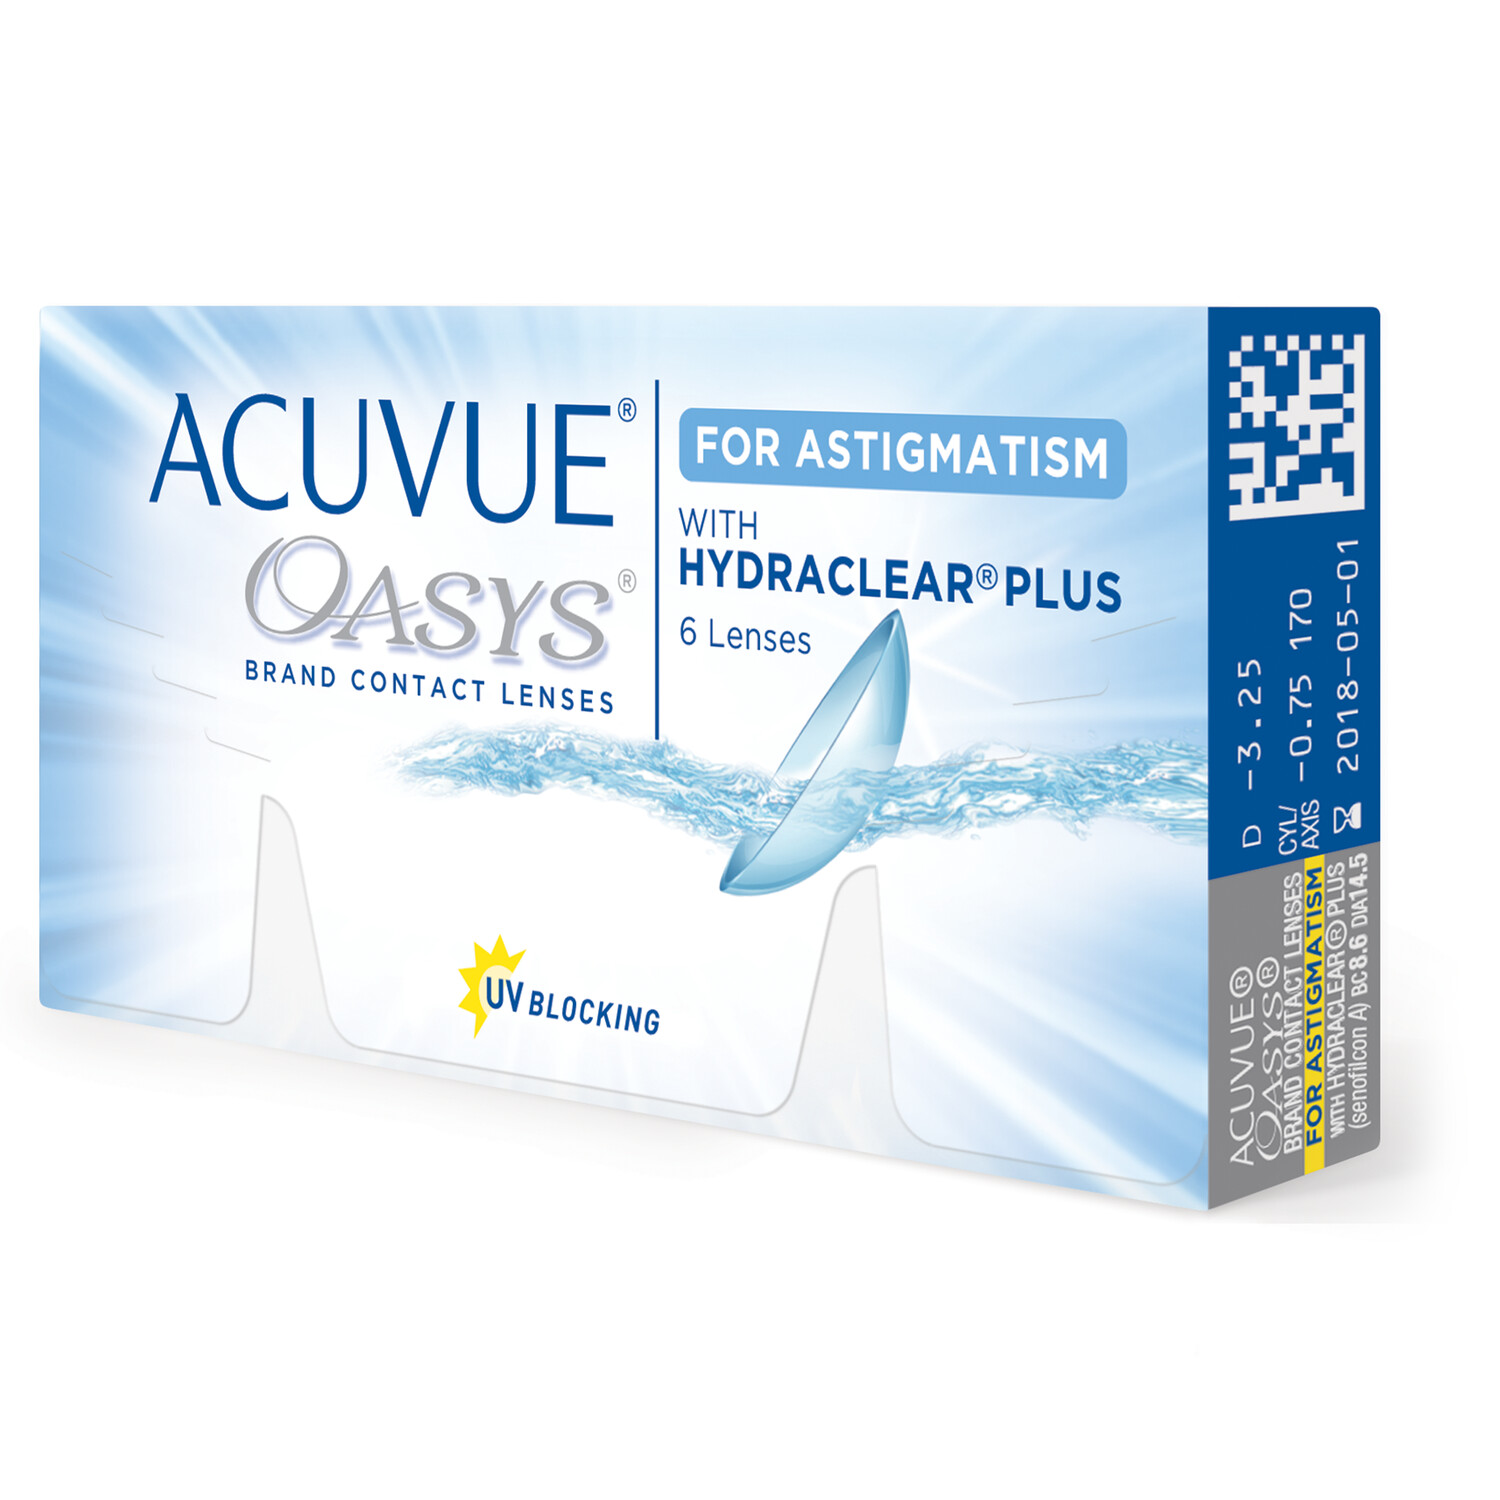 ACUVUE OASYS® for ASTIGMATISM 6 LENS BOX